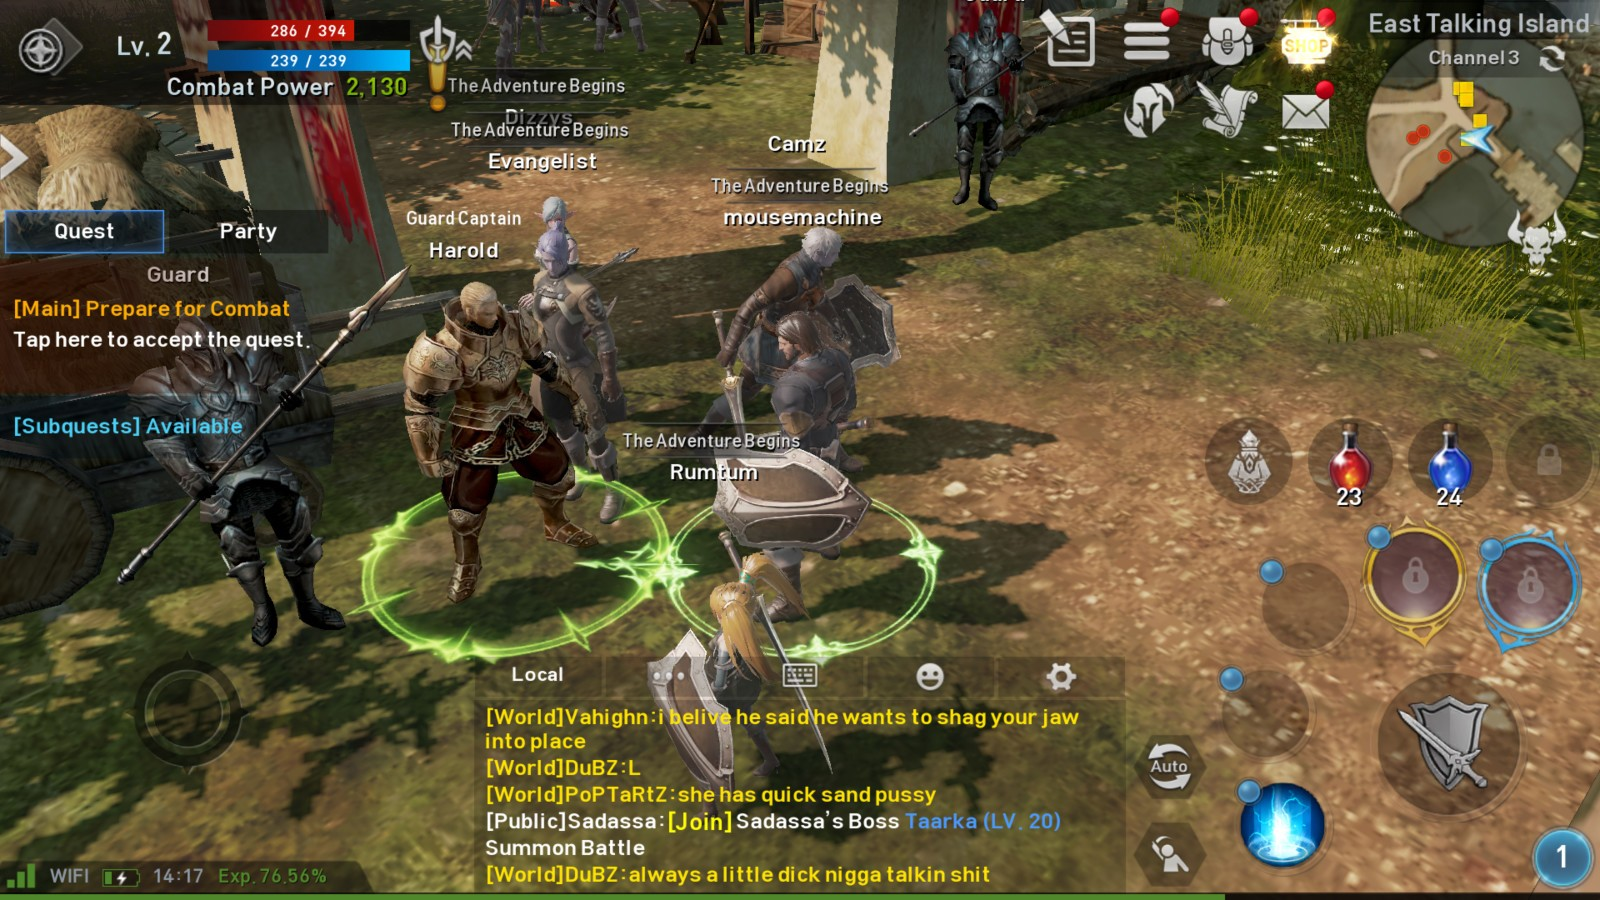 10 things that Lineage 2: Revolution fixes about the MMO